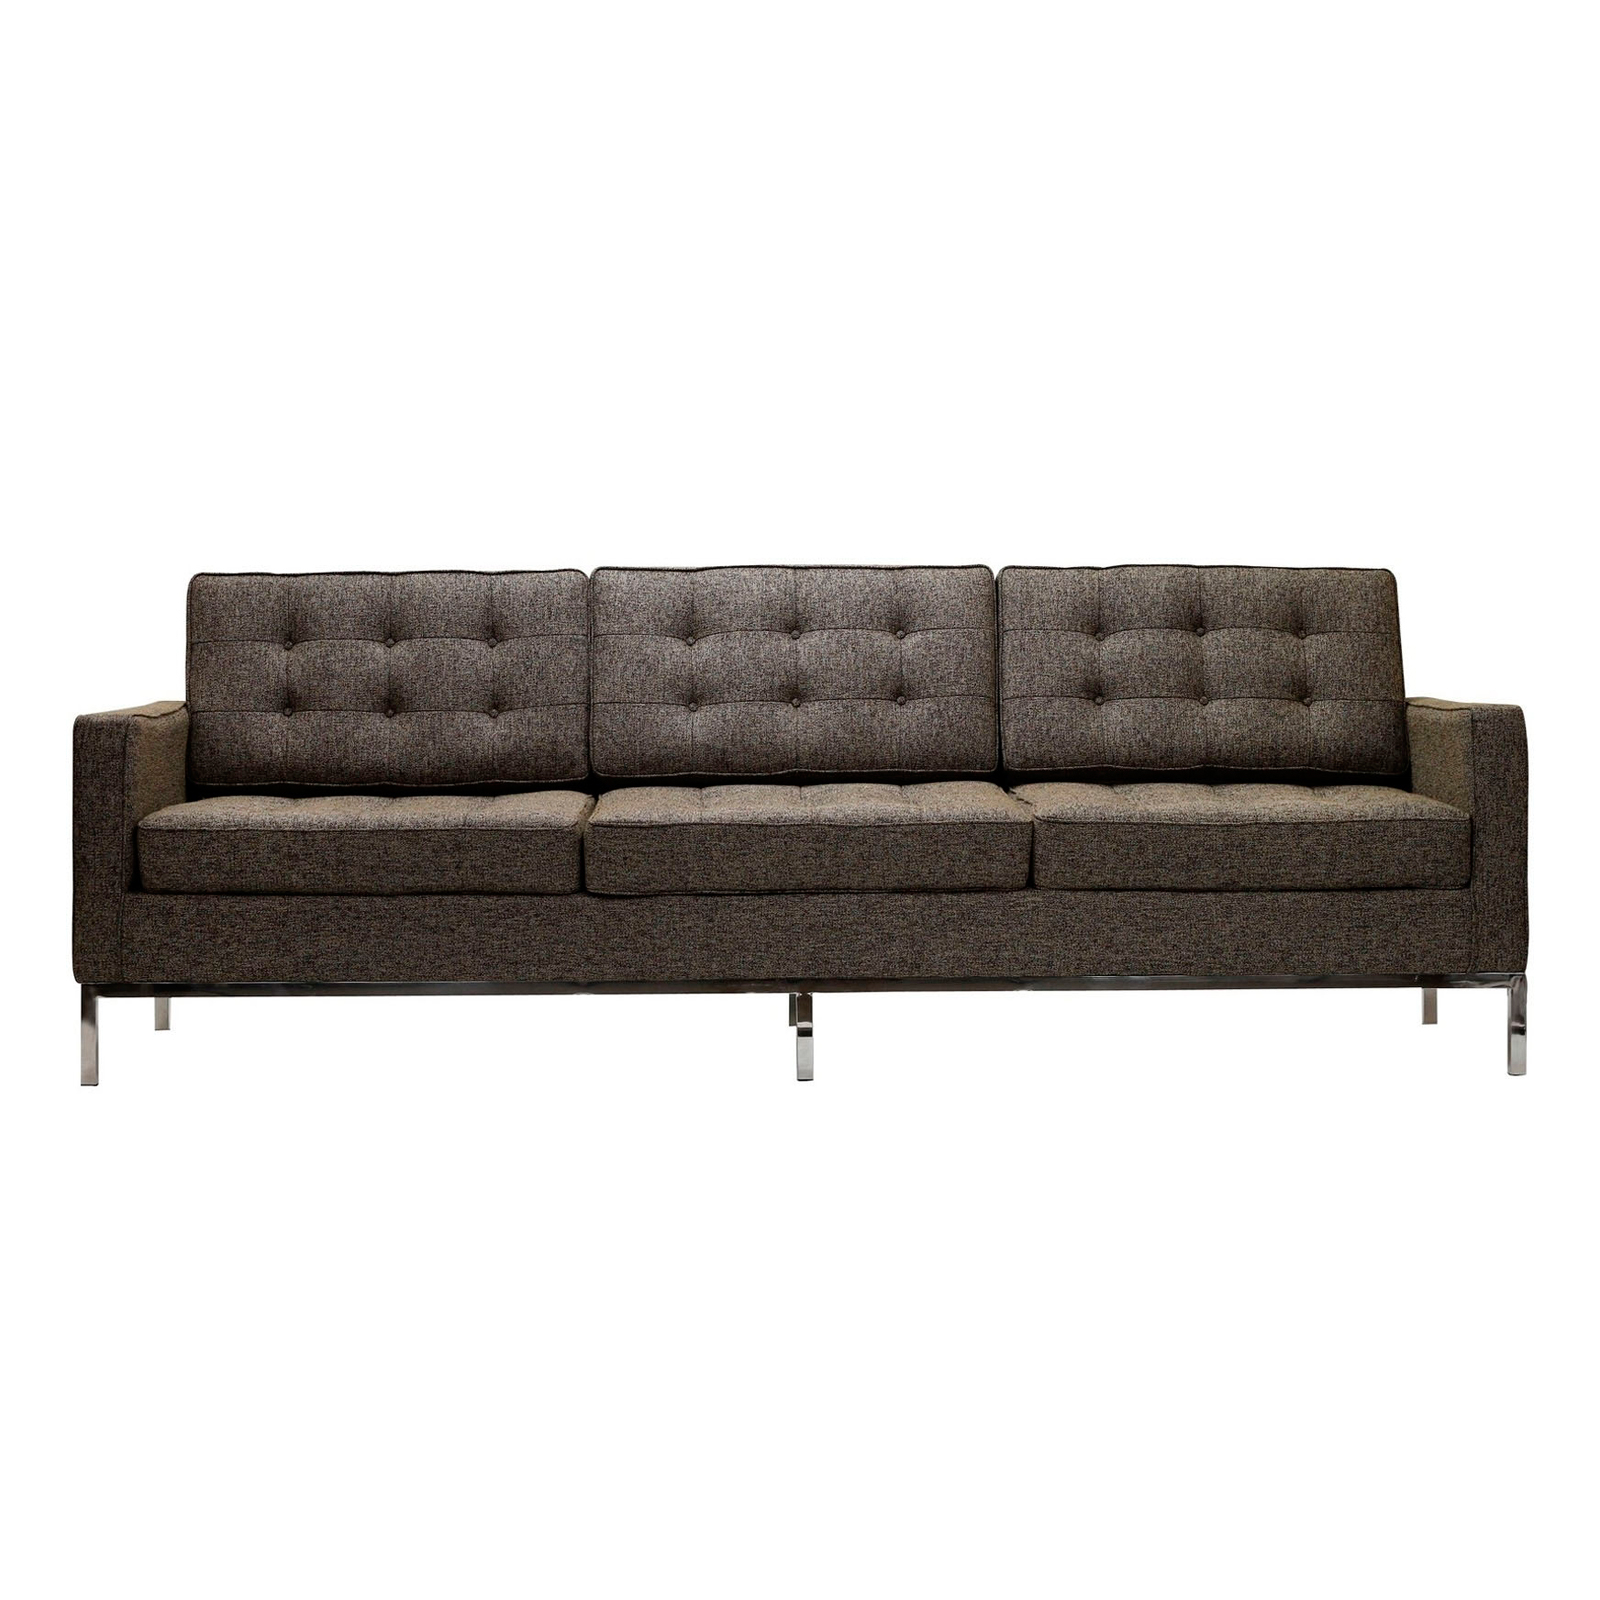 Florence Knoll Sofa Rentals | Event Furniture Rental Regarding Florence Knoll Style Sofas (View 8 of 15)